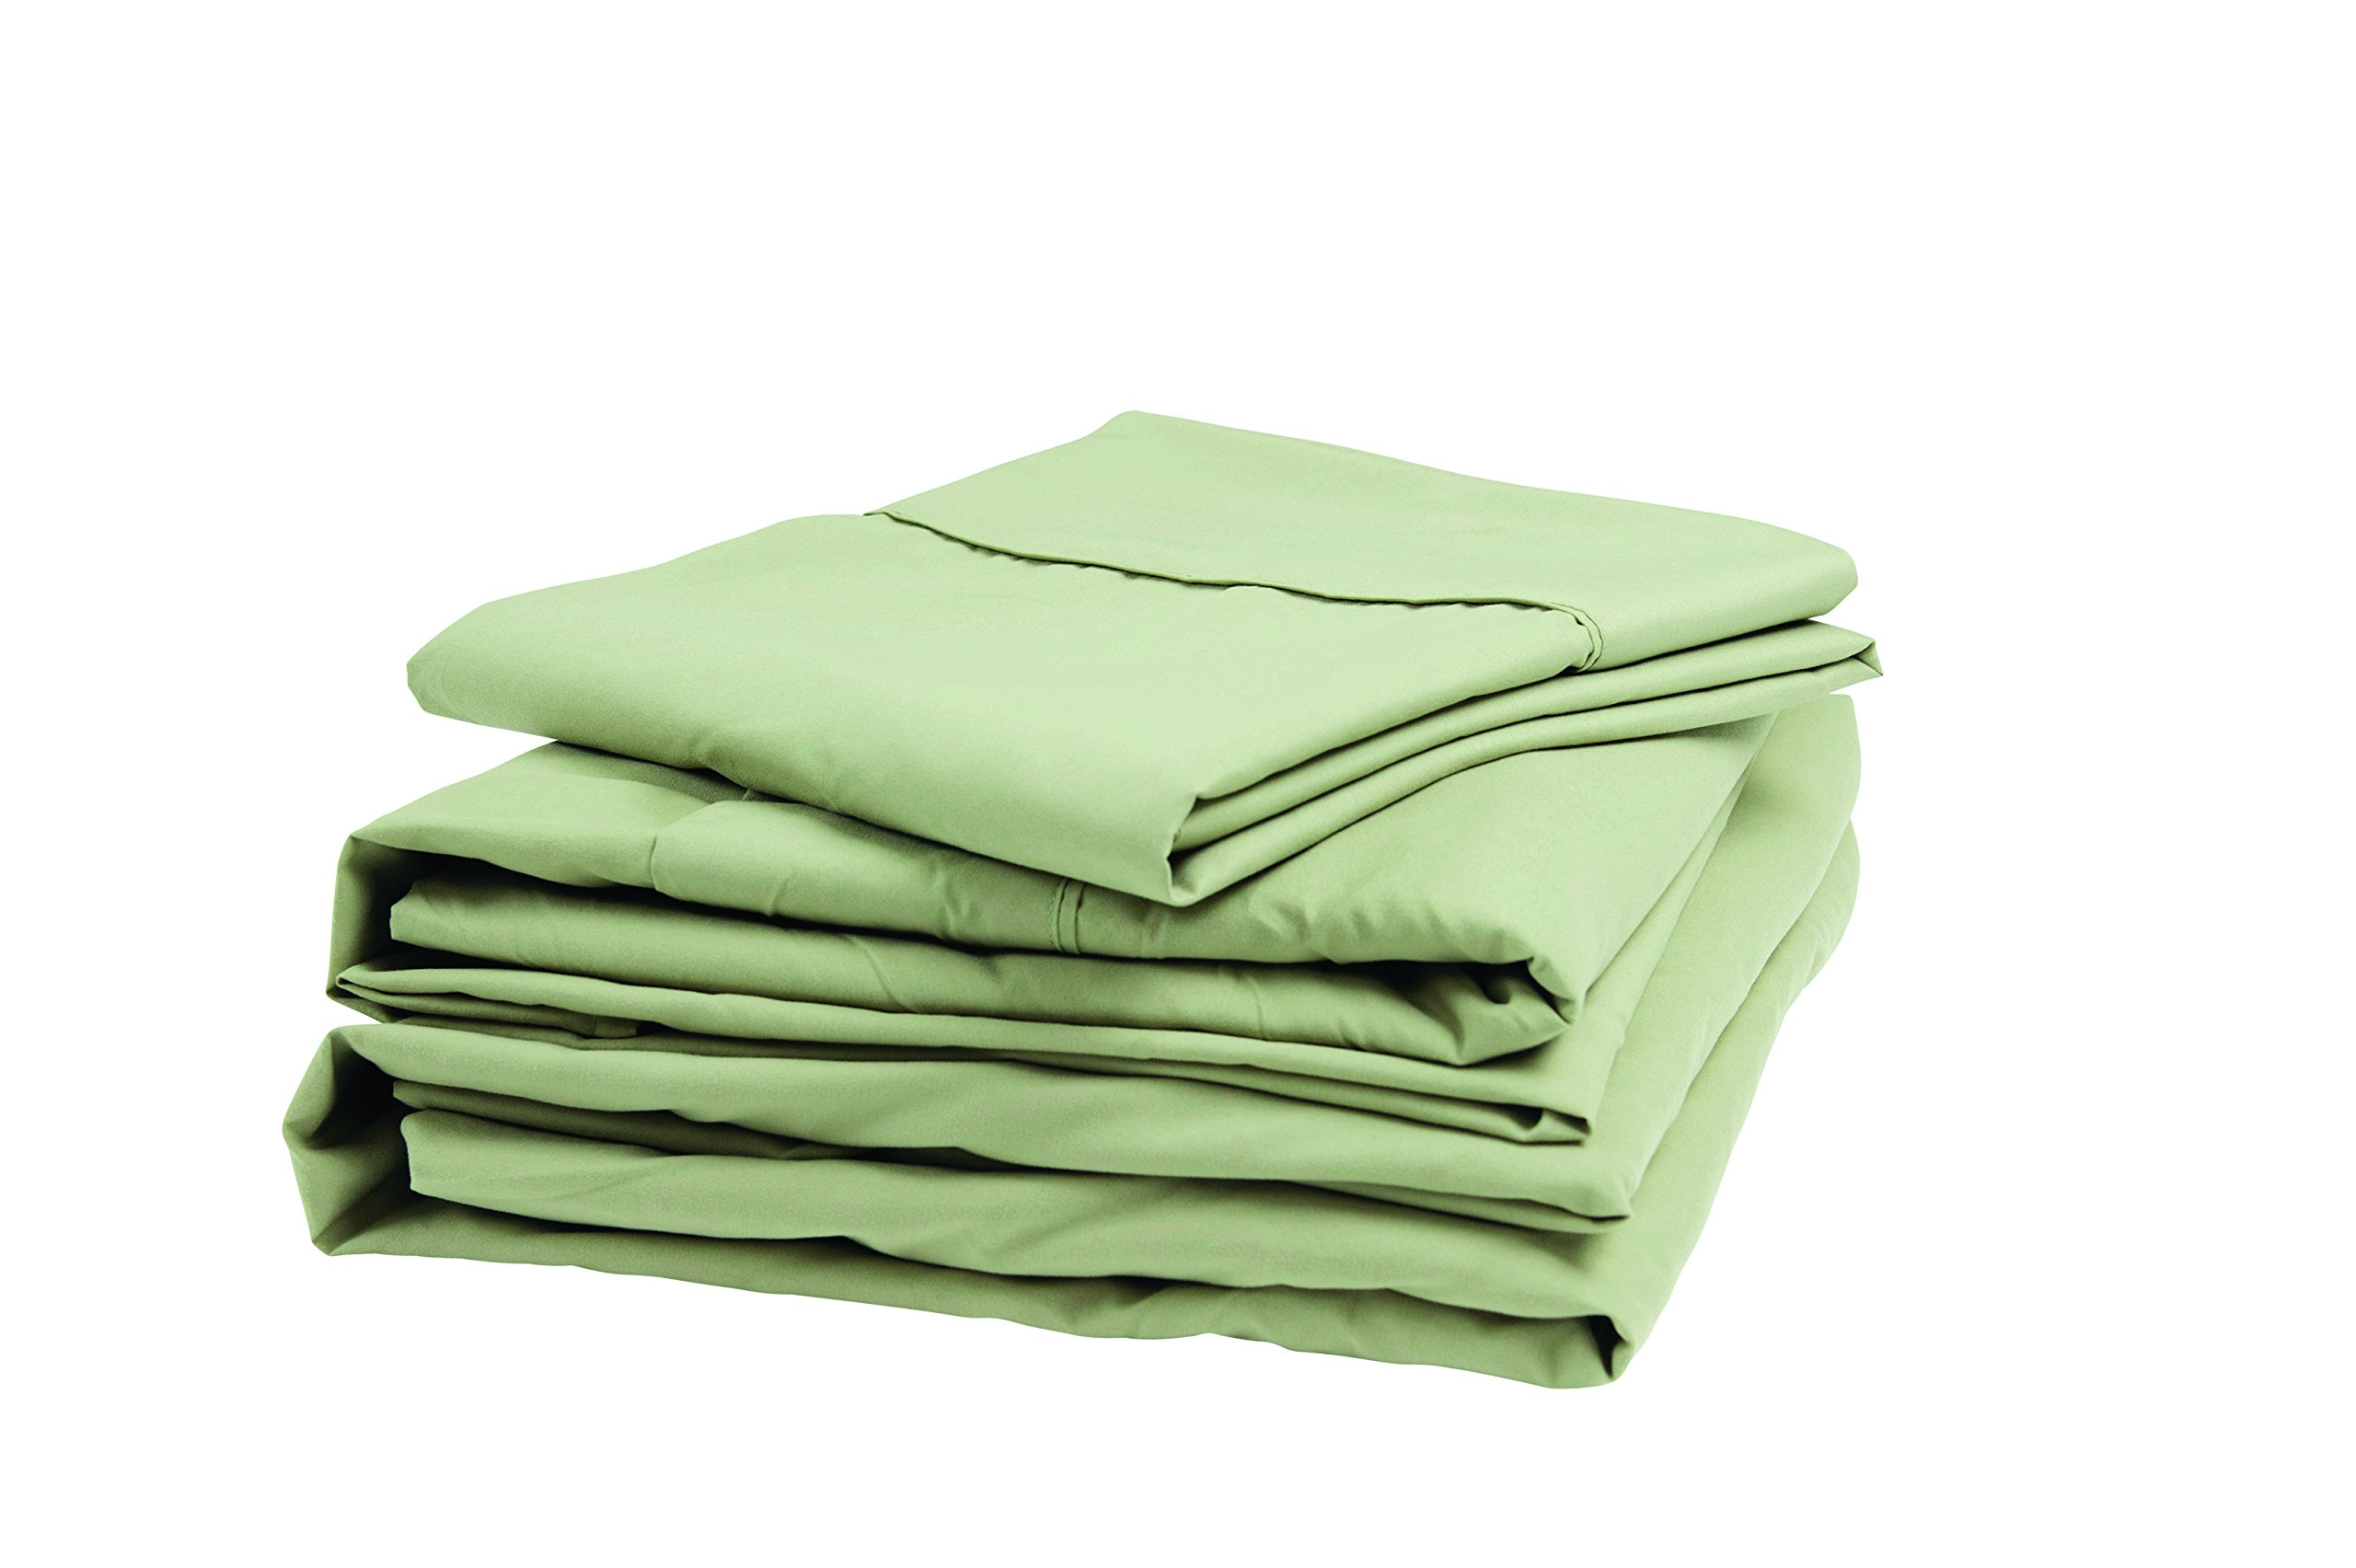 Denver 343508 RV Queen Size Sateen Sheet Set Sage by Denver Mattress